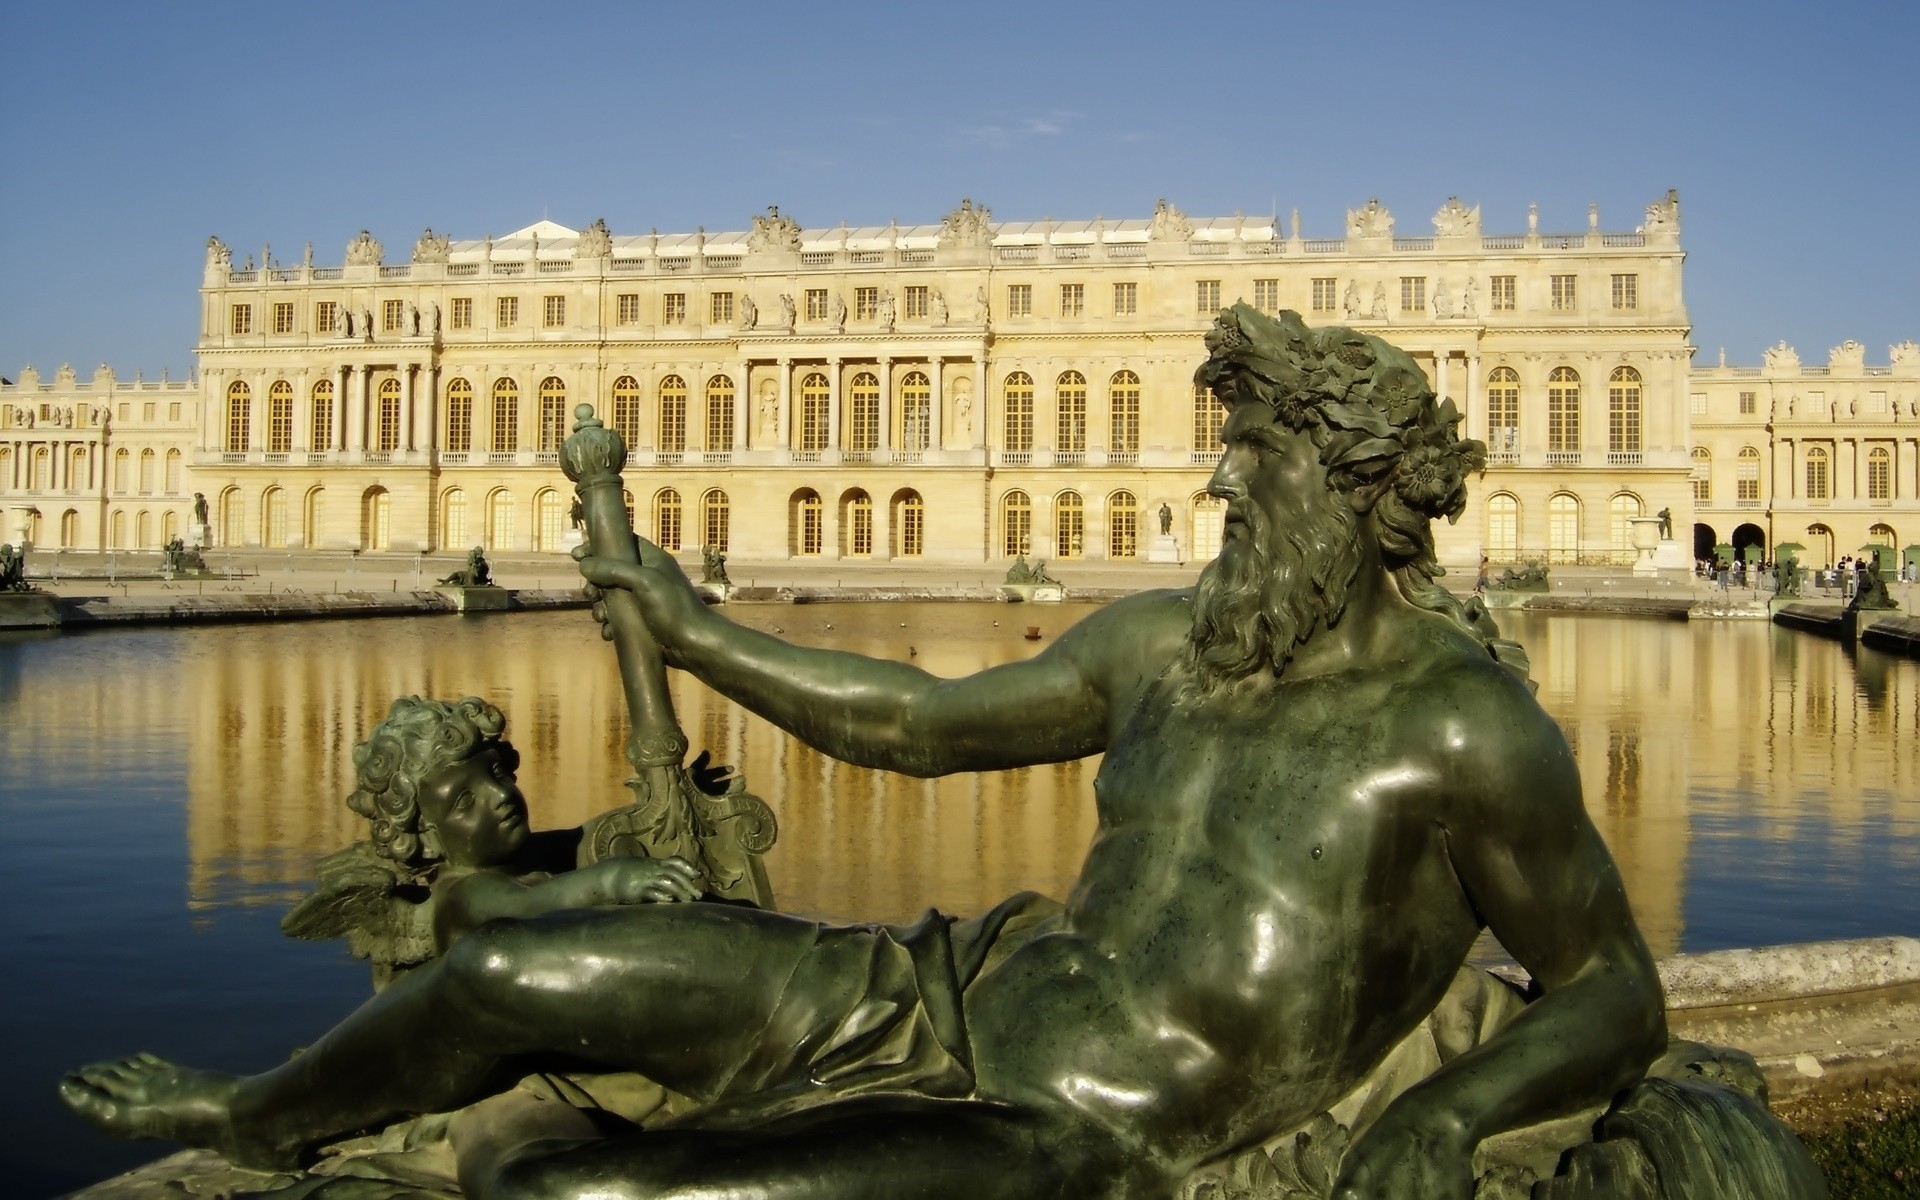 france sculpture statue travel architecture fountain monument city art sky daylight square baroque bronze outdoors building landmark water sightseeing tourism